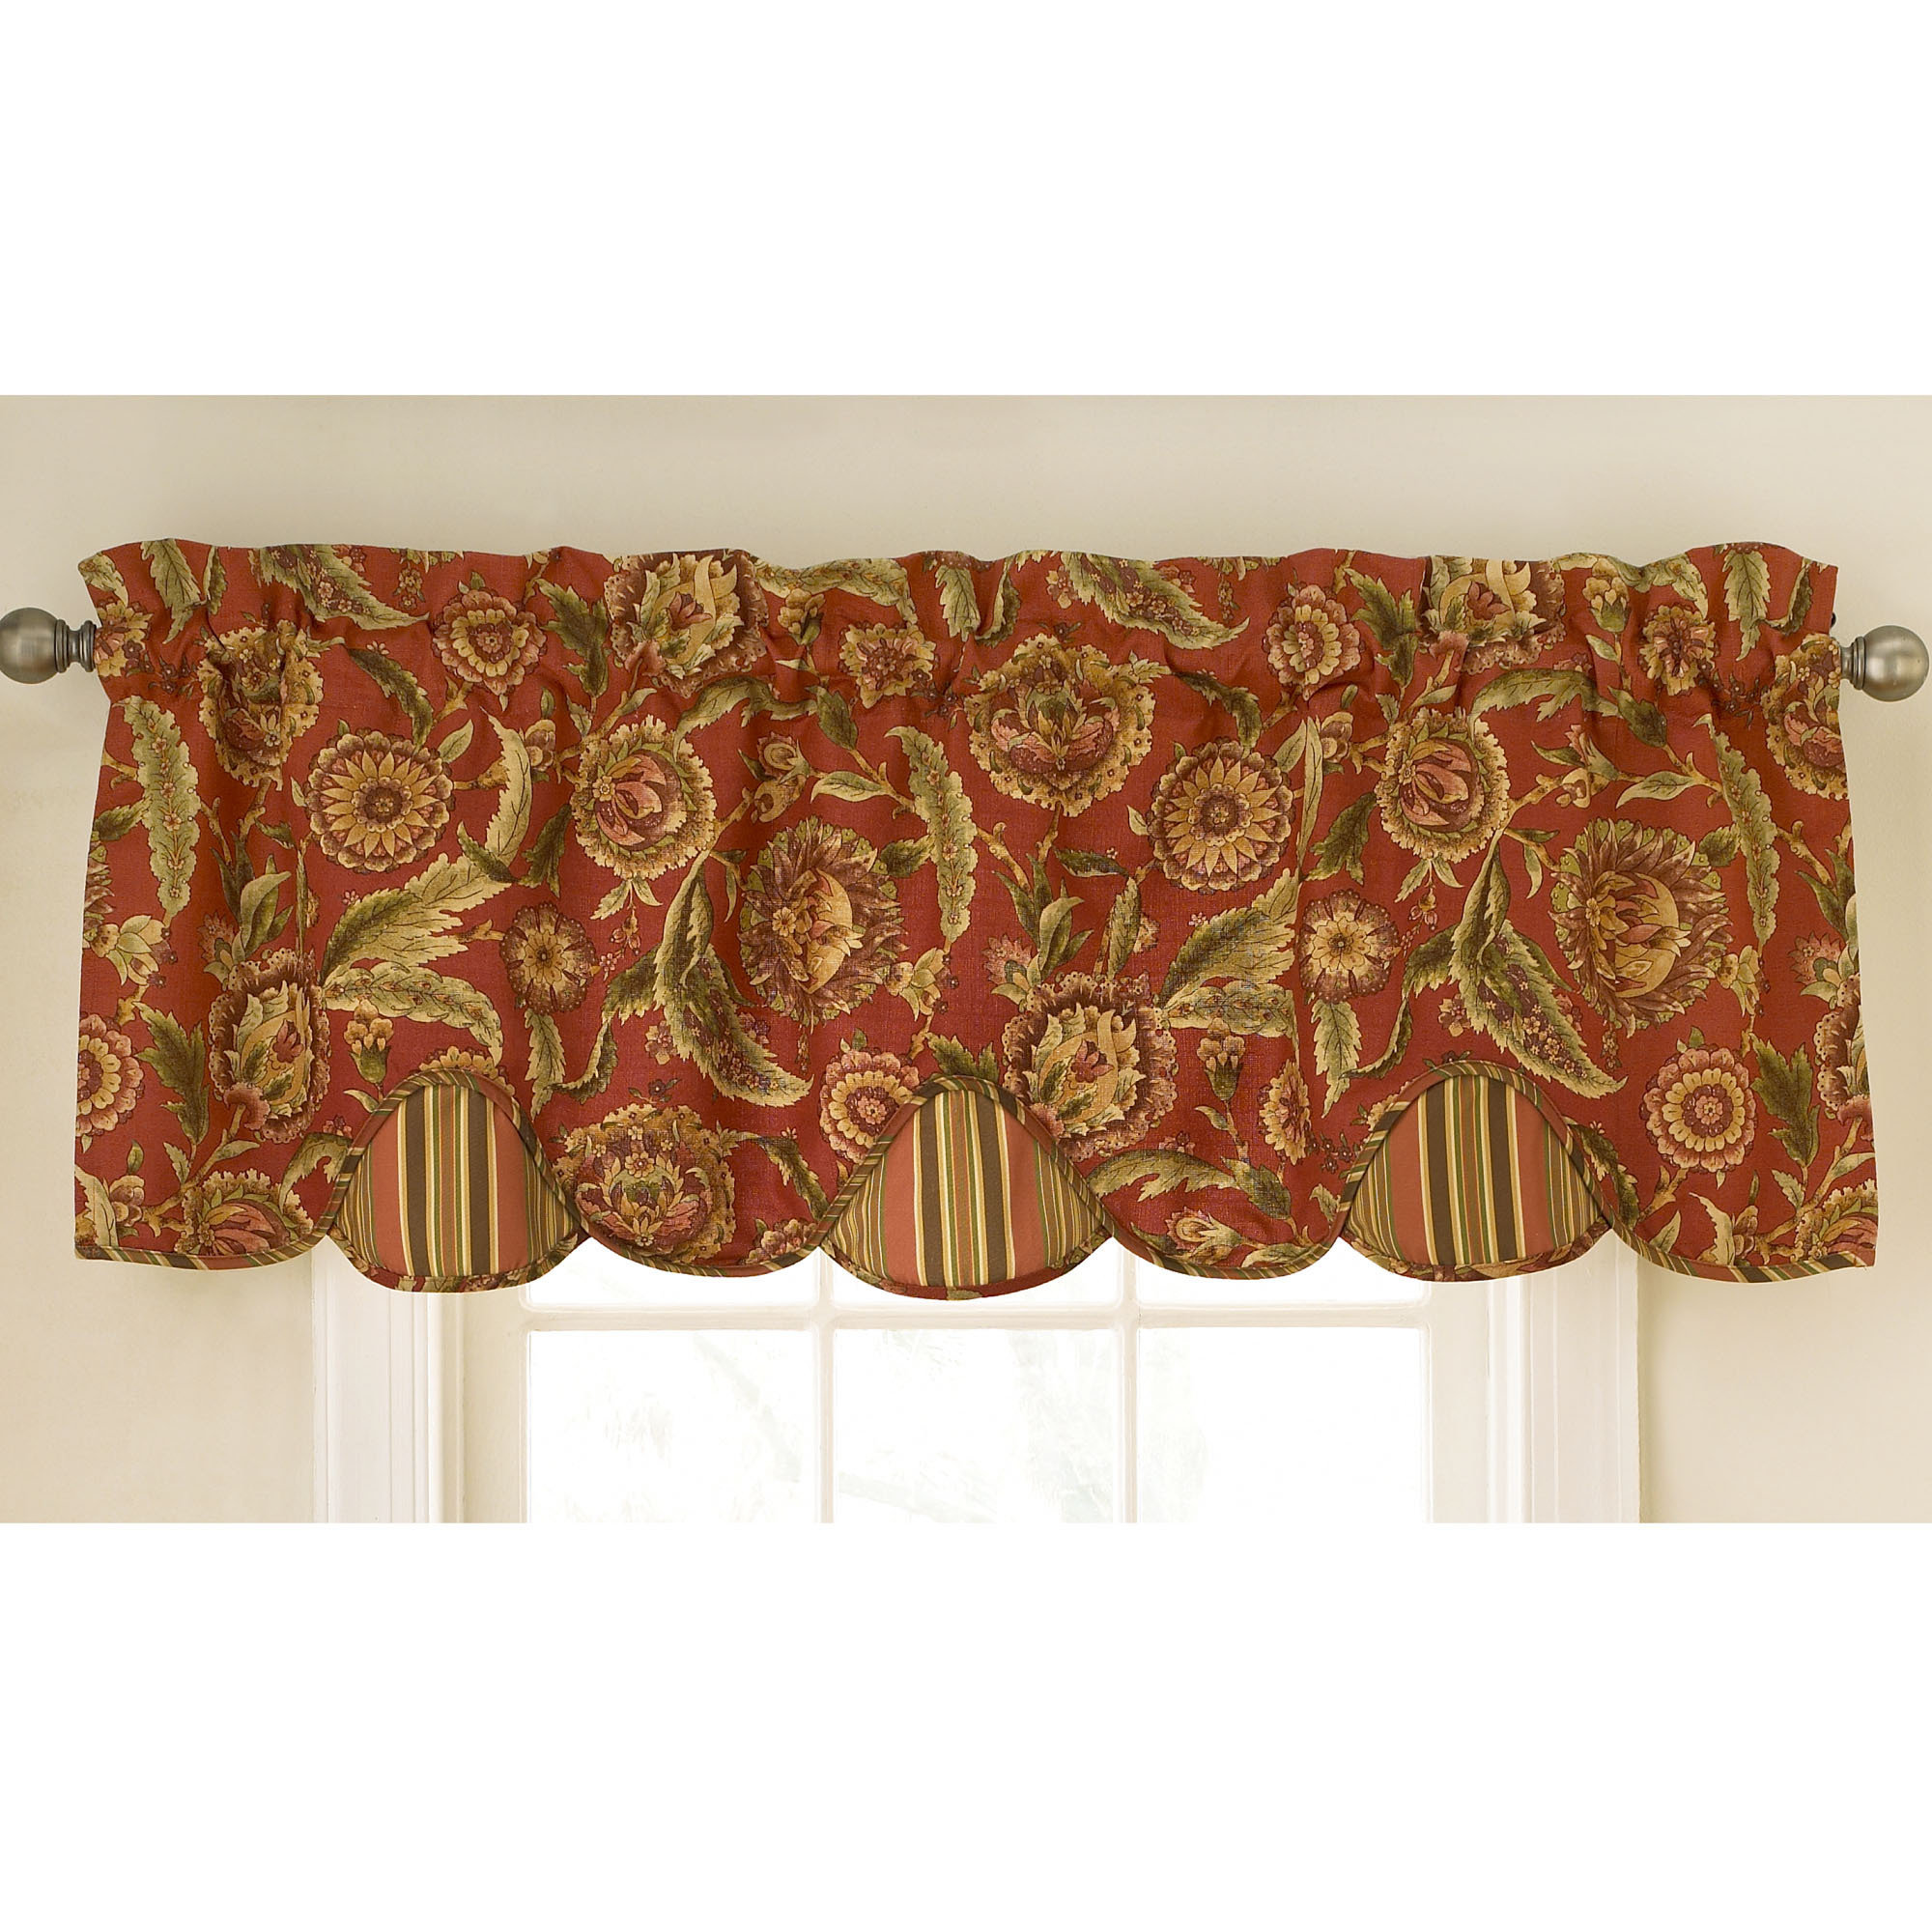 Waverly kitchen curtains and valances kitchen ideas - Kitchen valance patterns ...